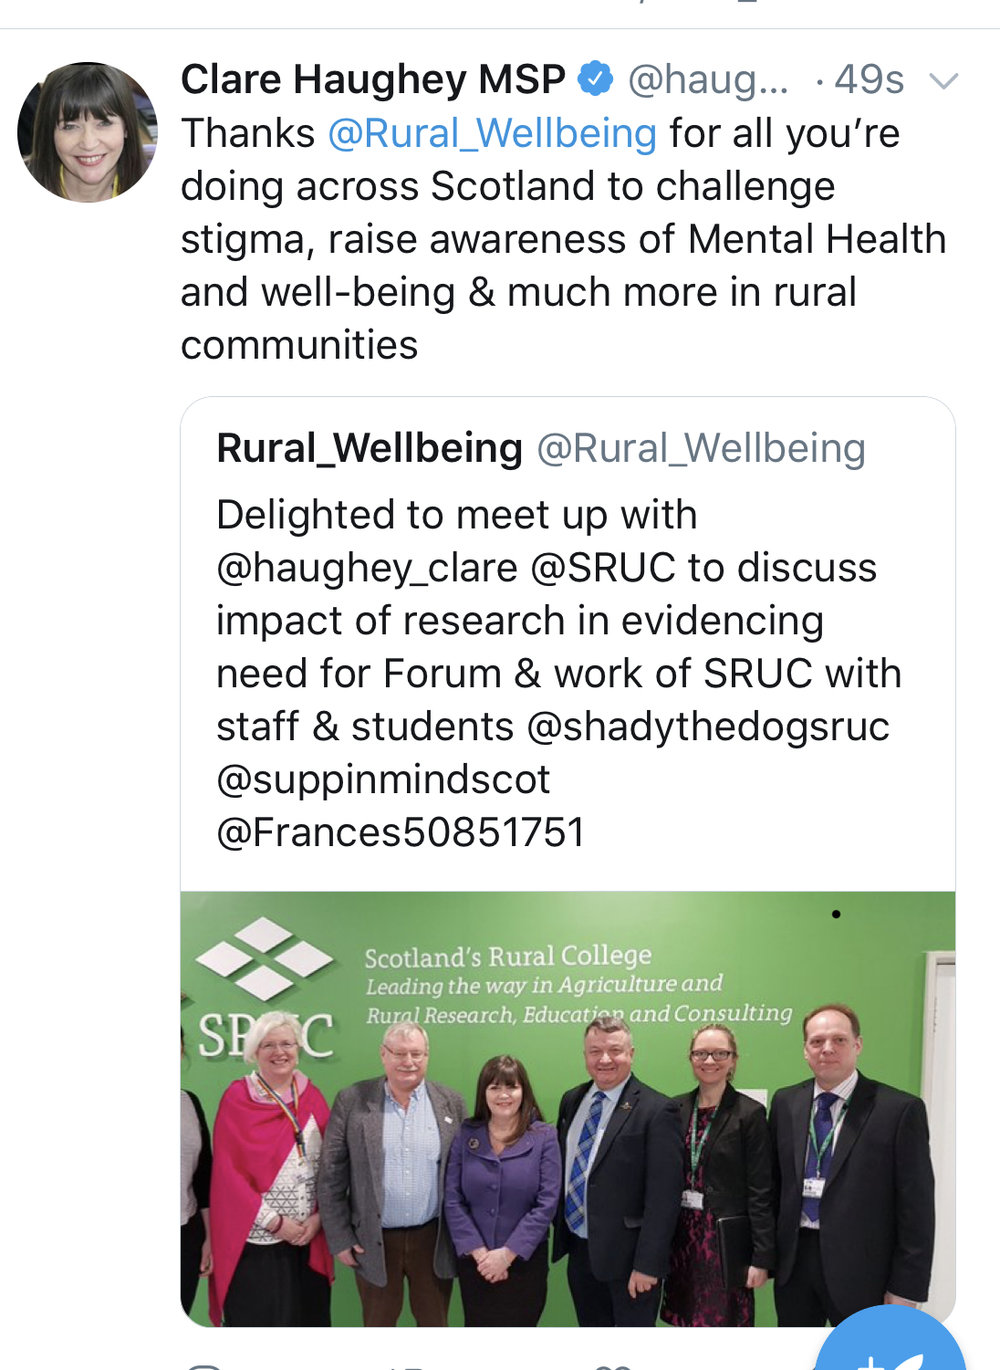 Minister for Mental Health Clare Haughey MSP thanks National Rural Mental Health Forum for its work